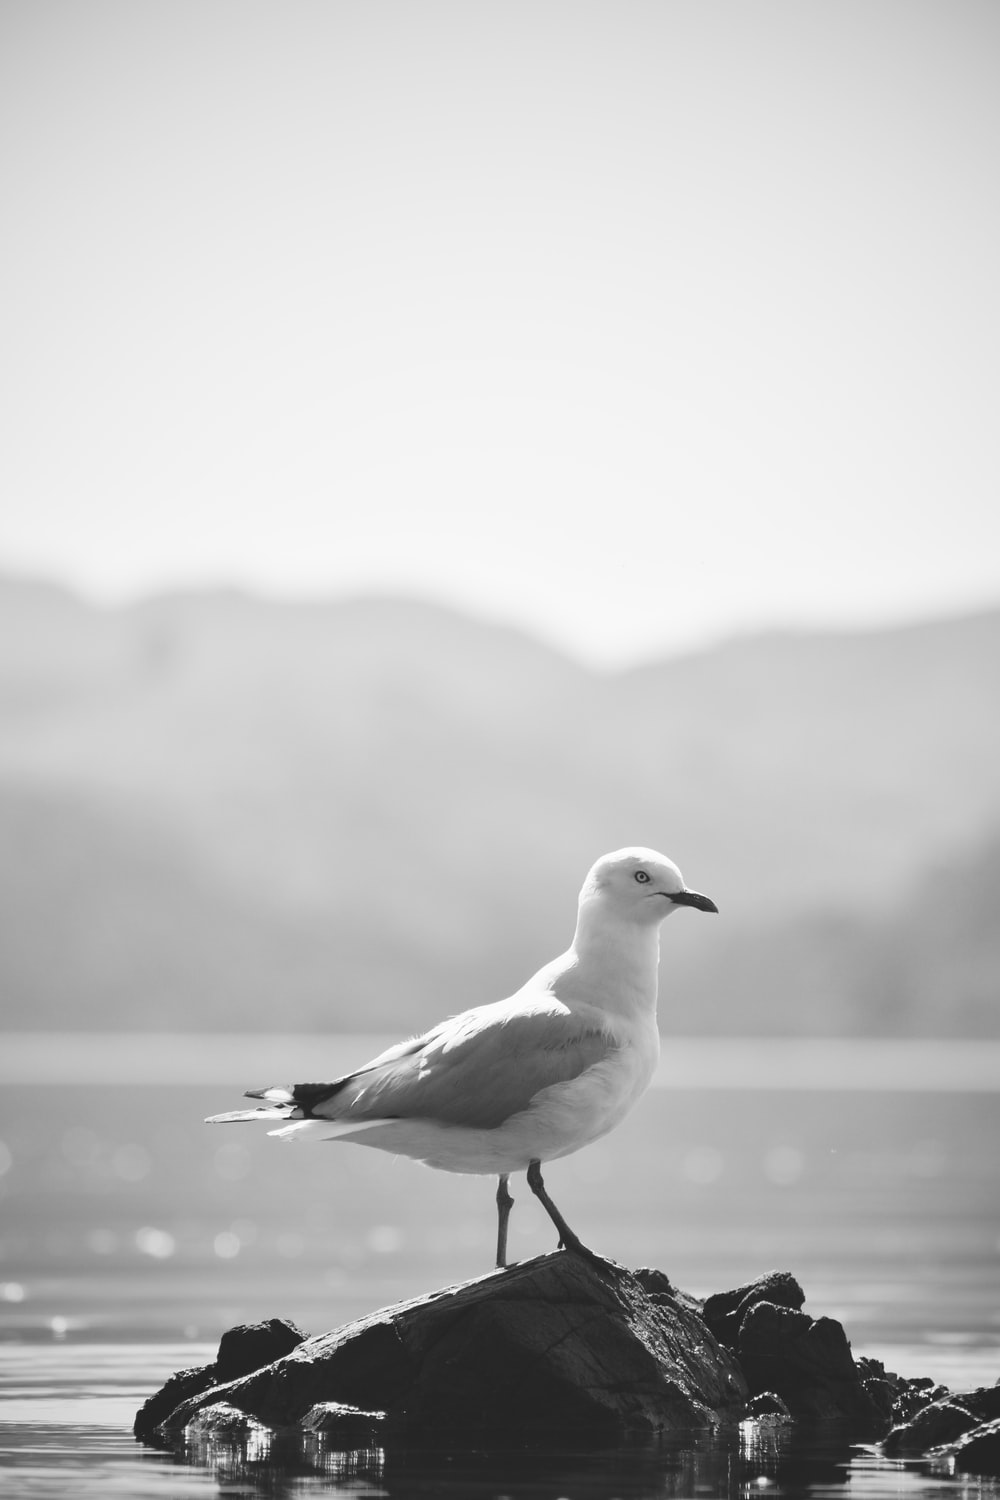 white and black bird on black rock